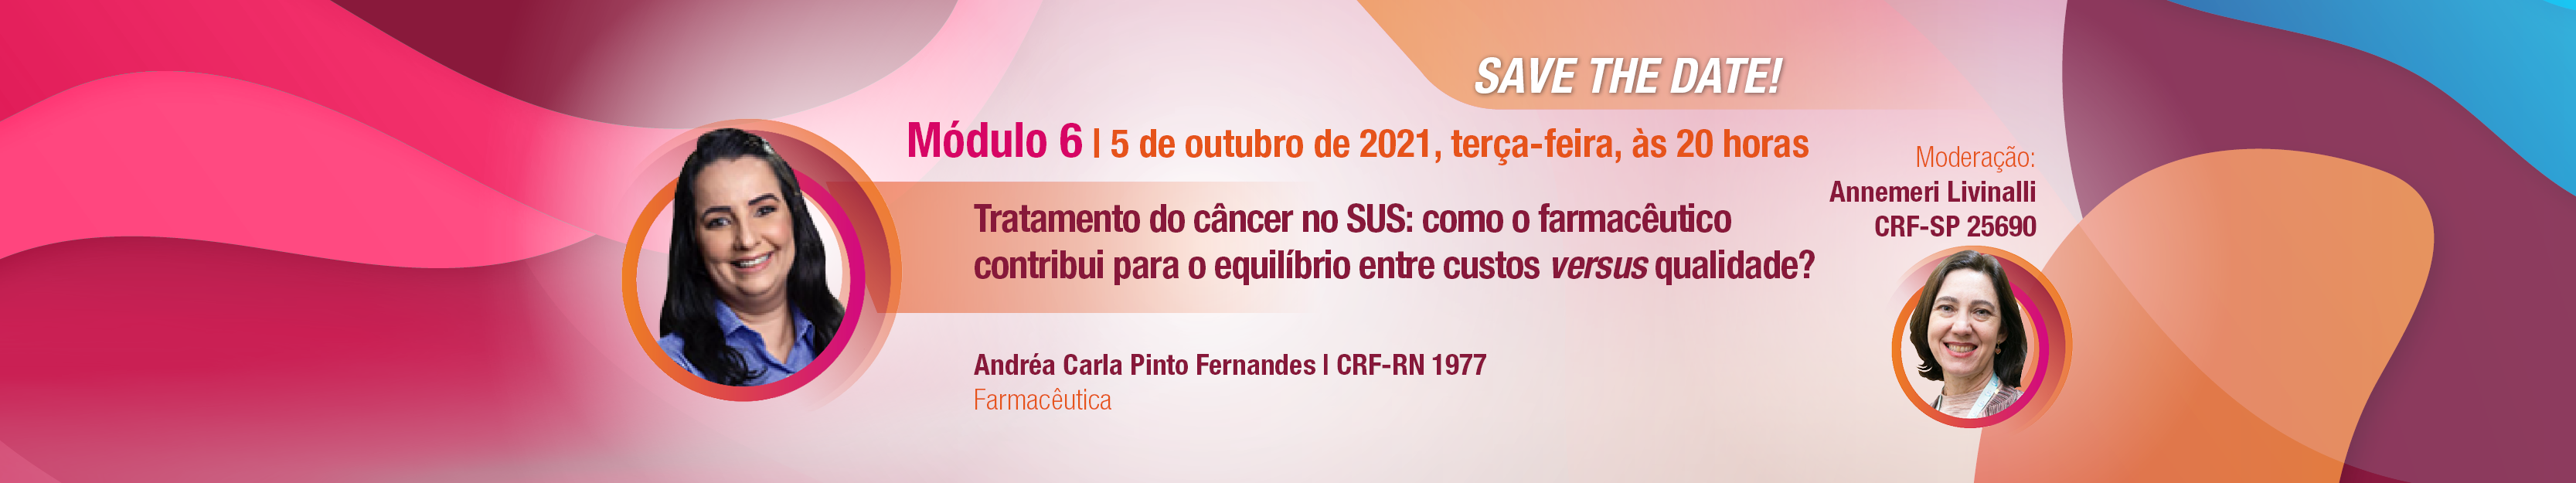 VF2021-banners aulas11